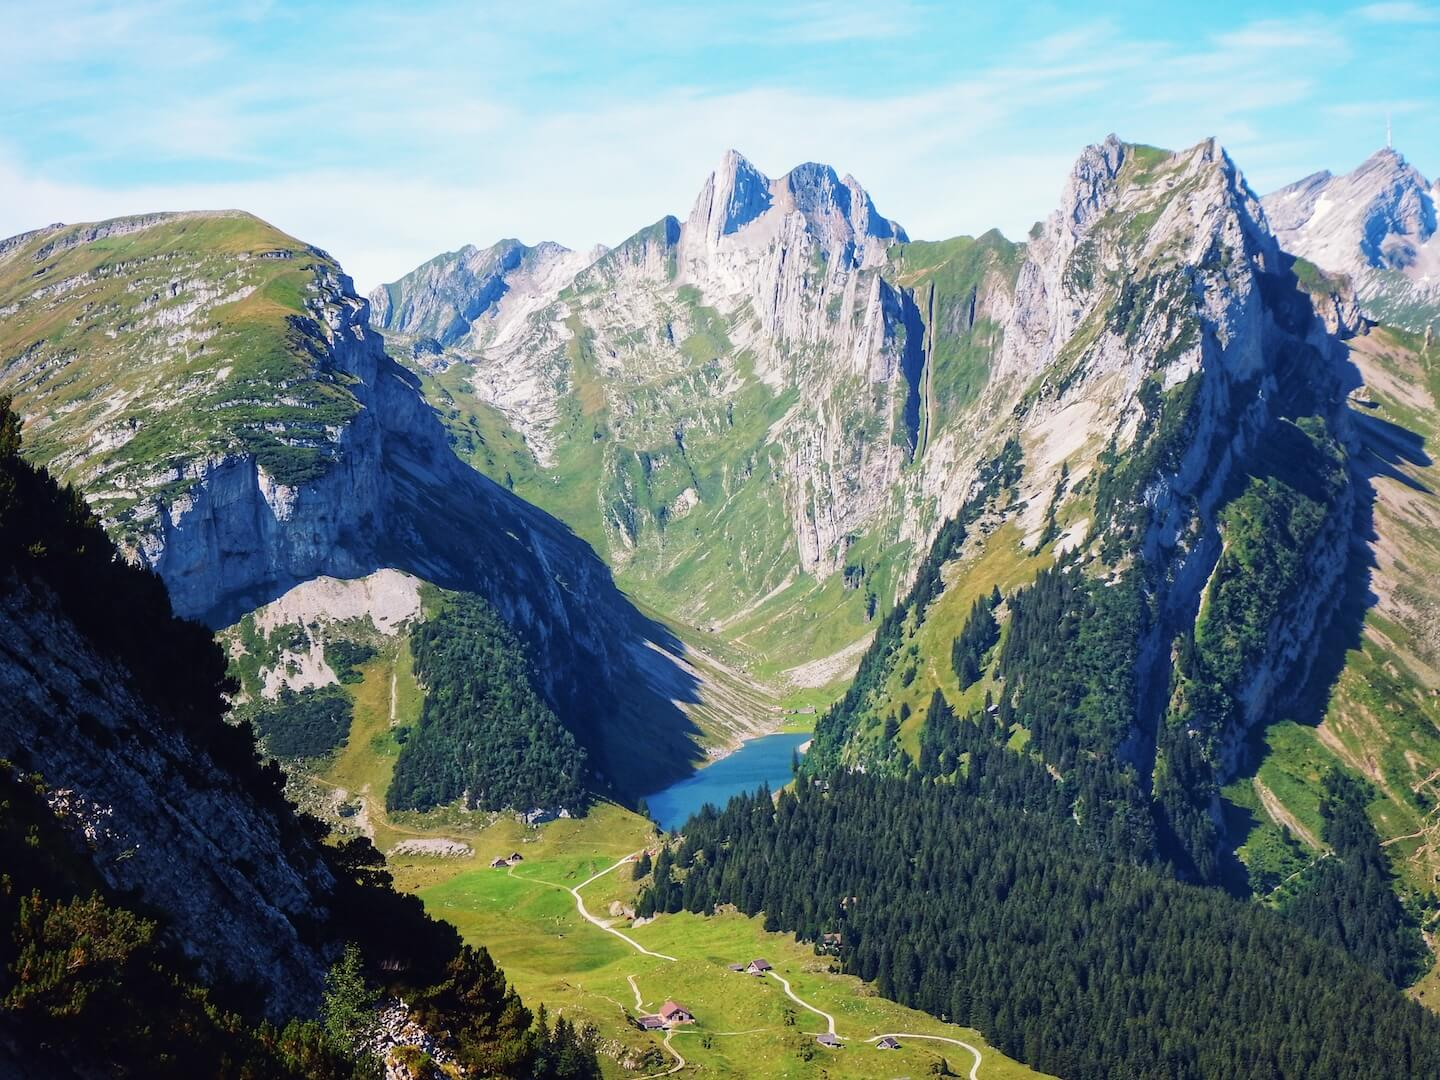 Appenzellerland, Culinary Hiking Trails | Moon & Honey Travel